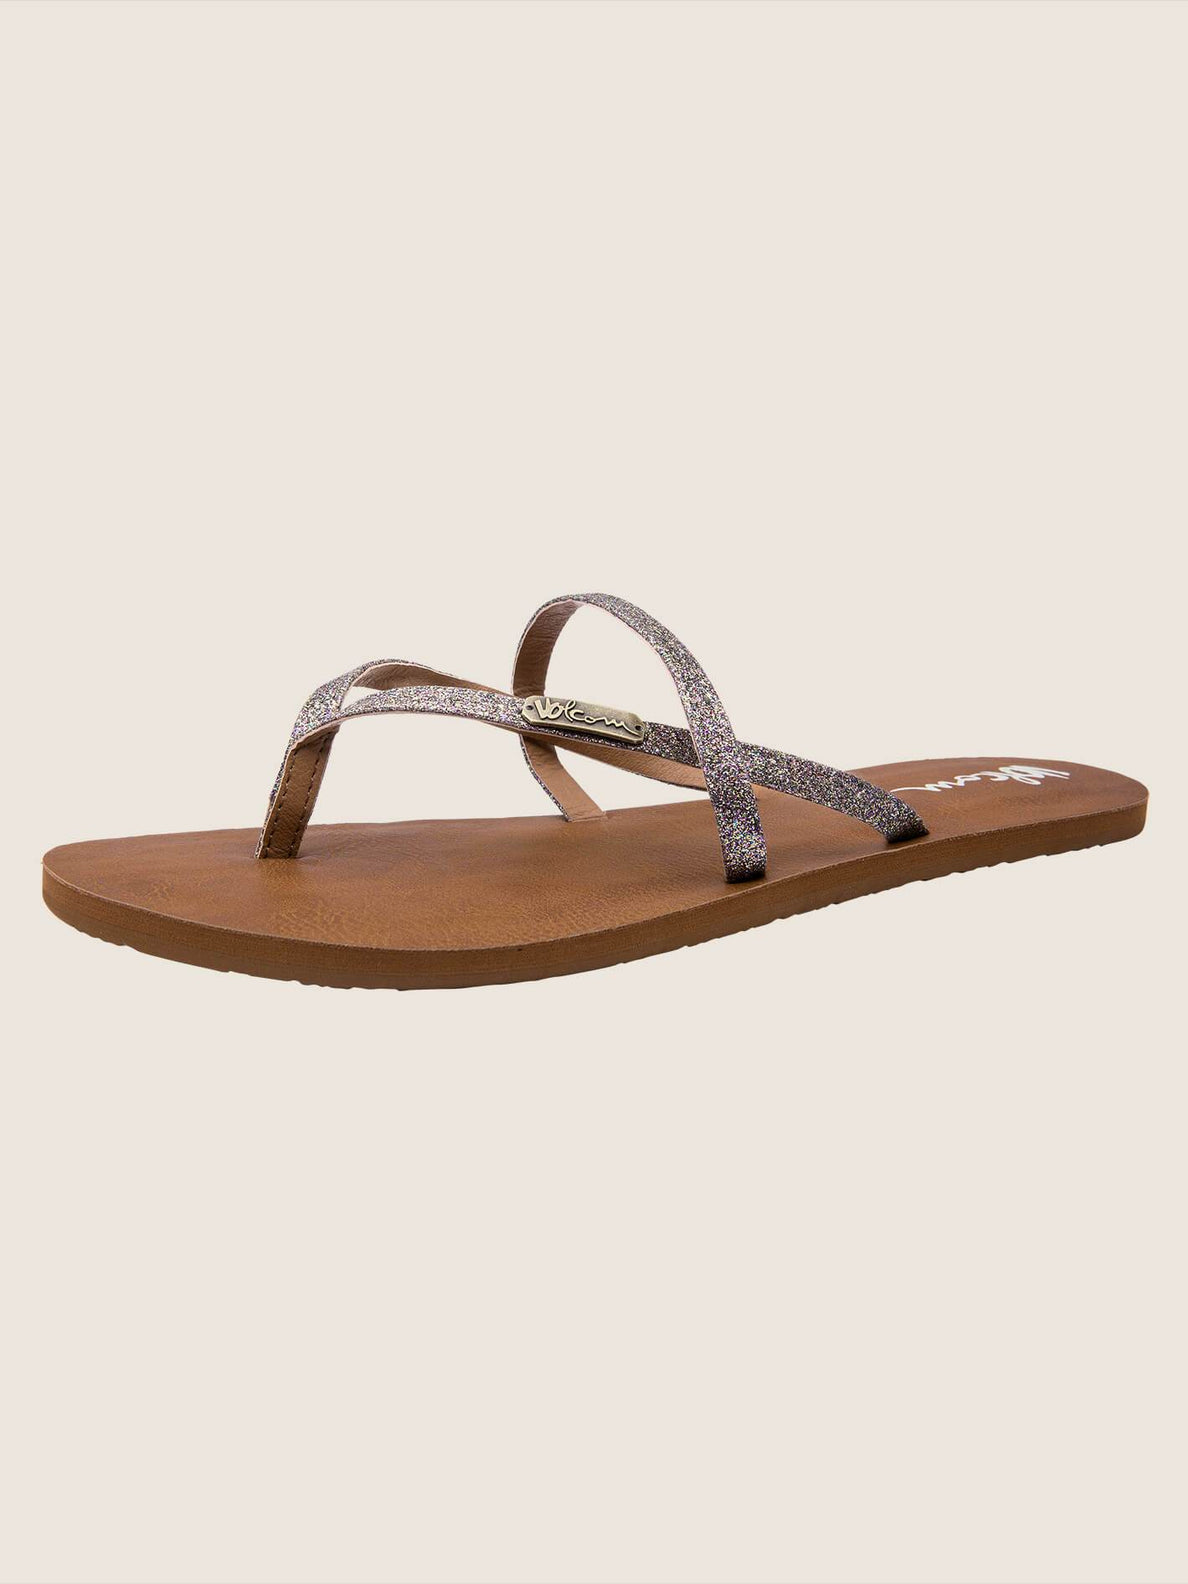 All Night Long Sandals In Multi, Back View